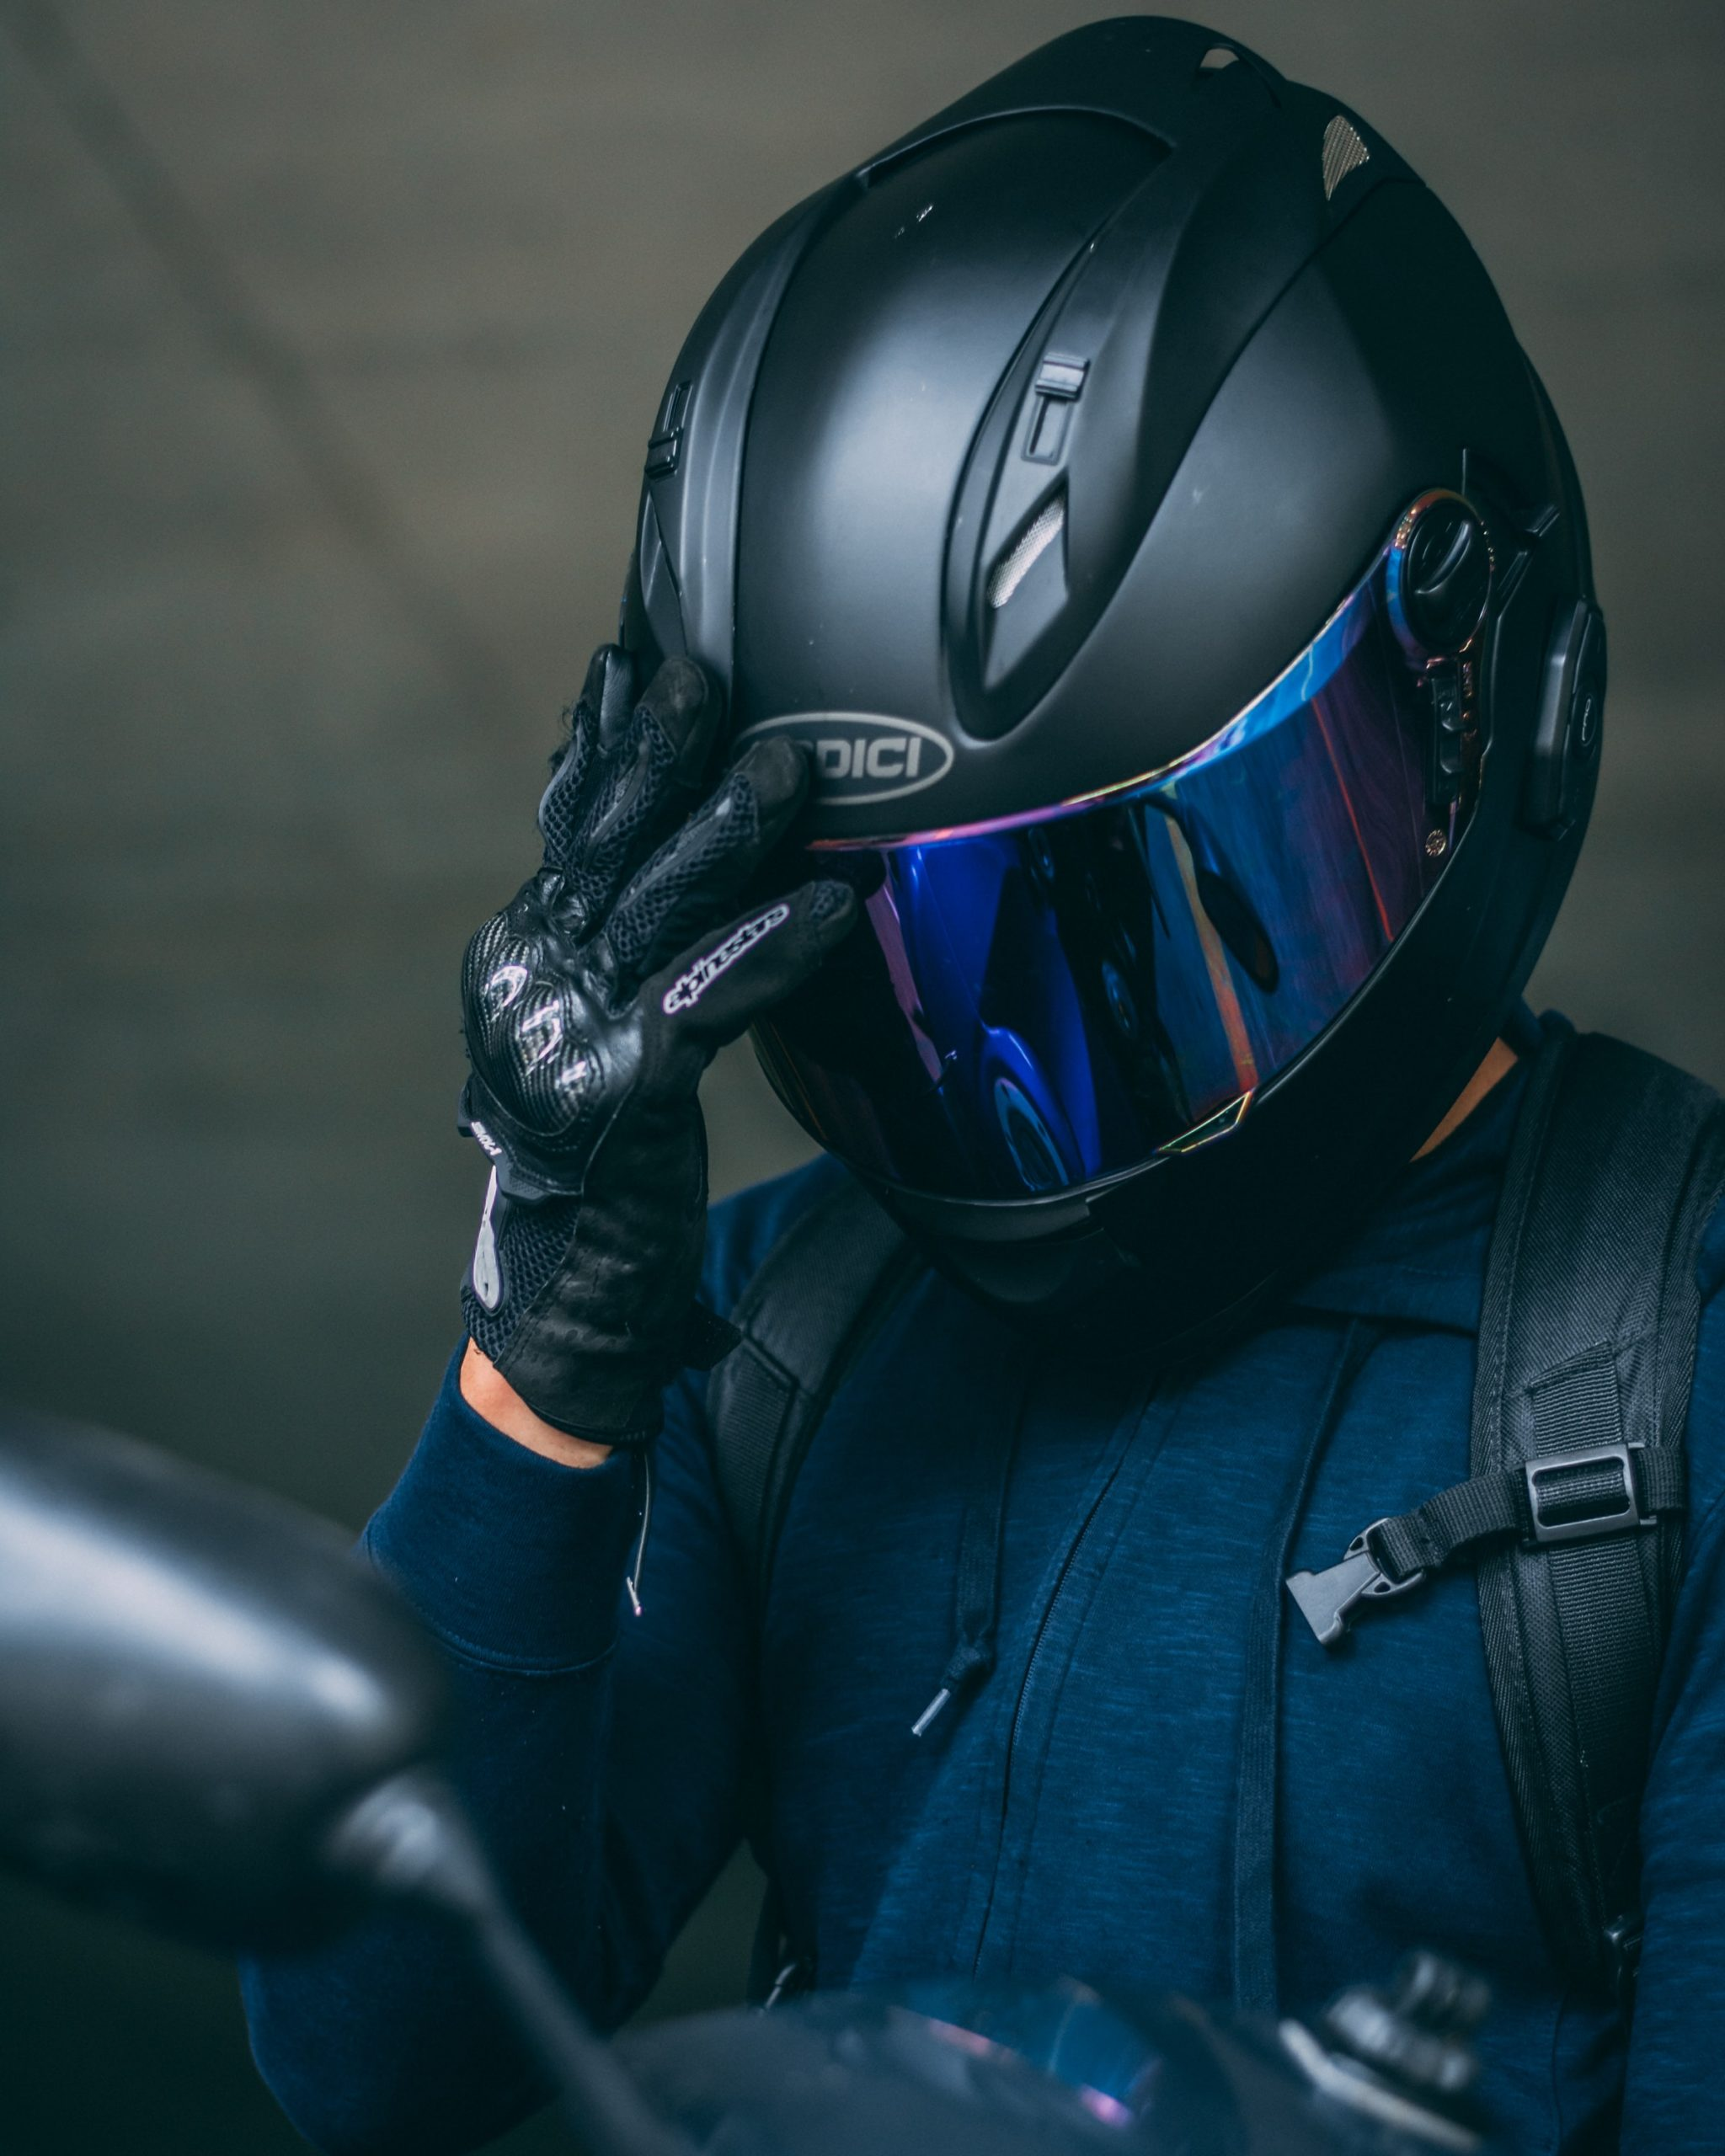 Tips before buying a helmet